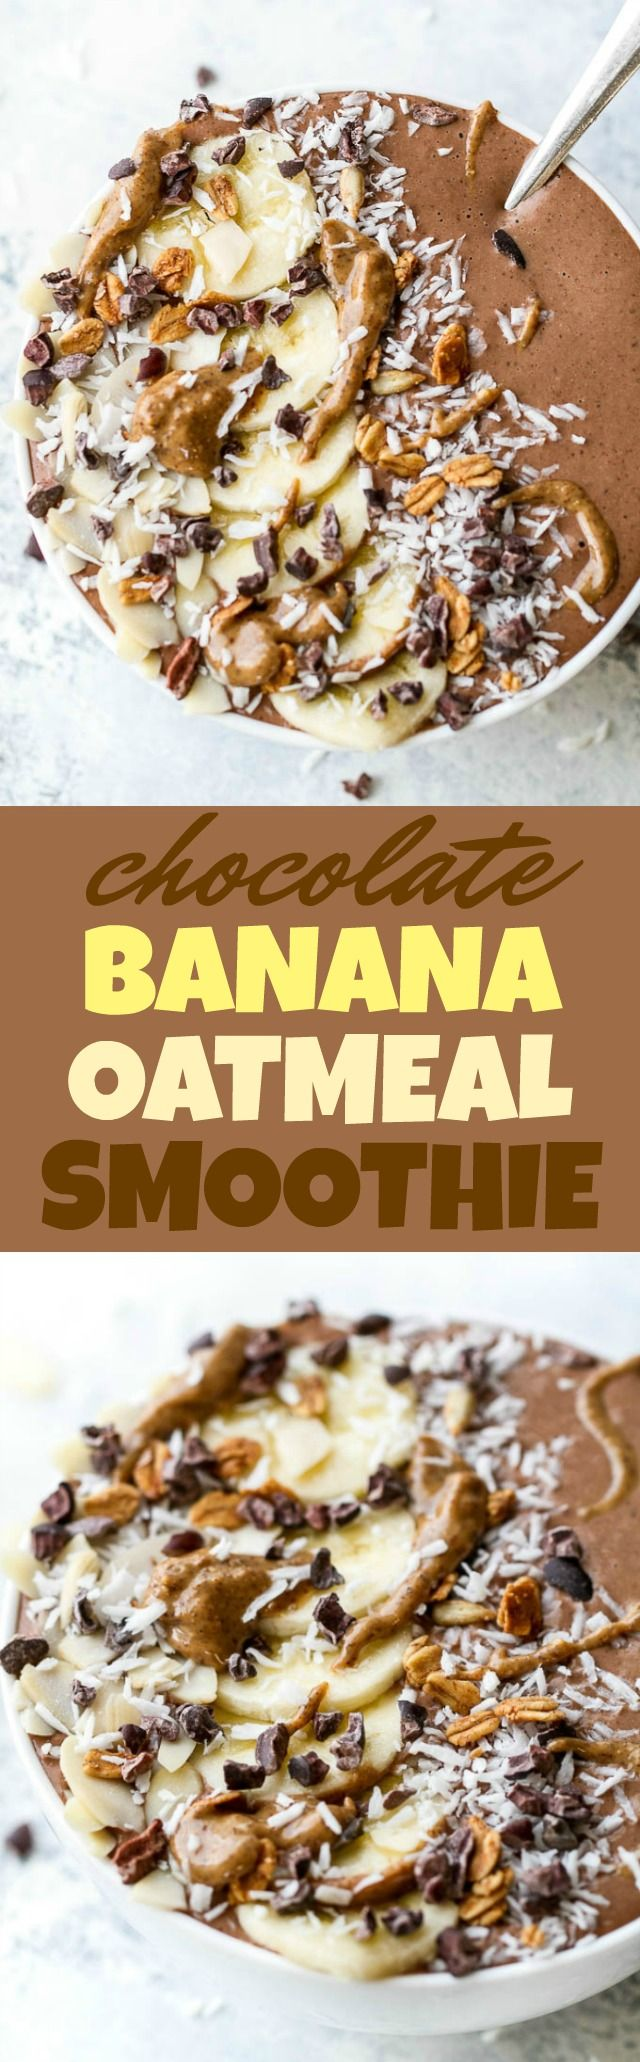 This creamy Chocolate Banana Oatmeal Smoothie Bowl has that stick-to-your-ribs feeling of a bowl of oats and will keep you satisfied for hours with plenty of fiber, plant-based protein, and healthy fat. The perfect vegan and gluten-free breakfast or snack! | runningwithspoons.com